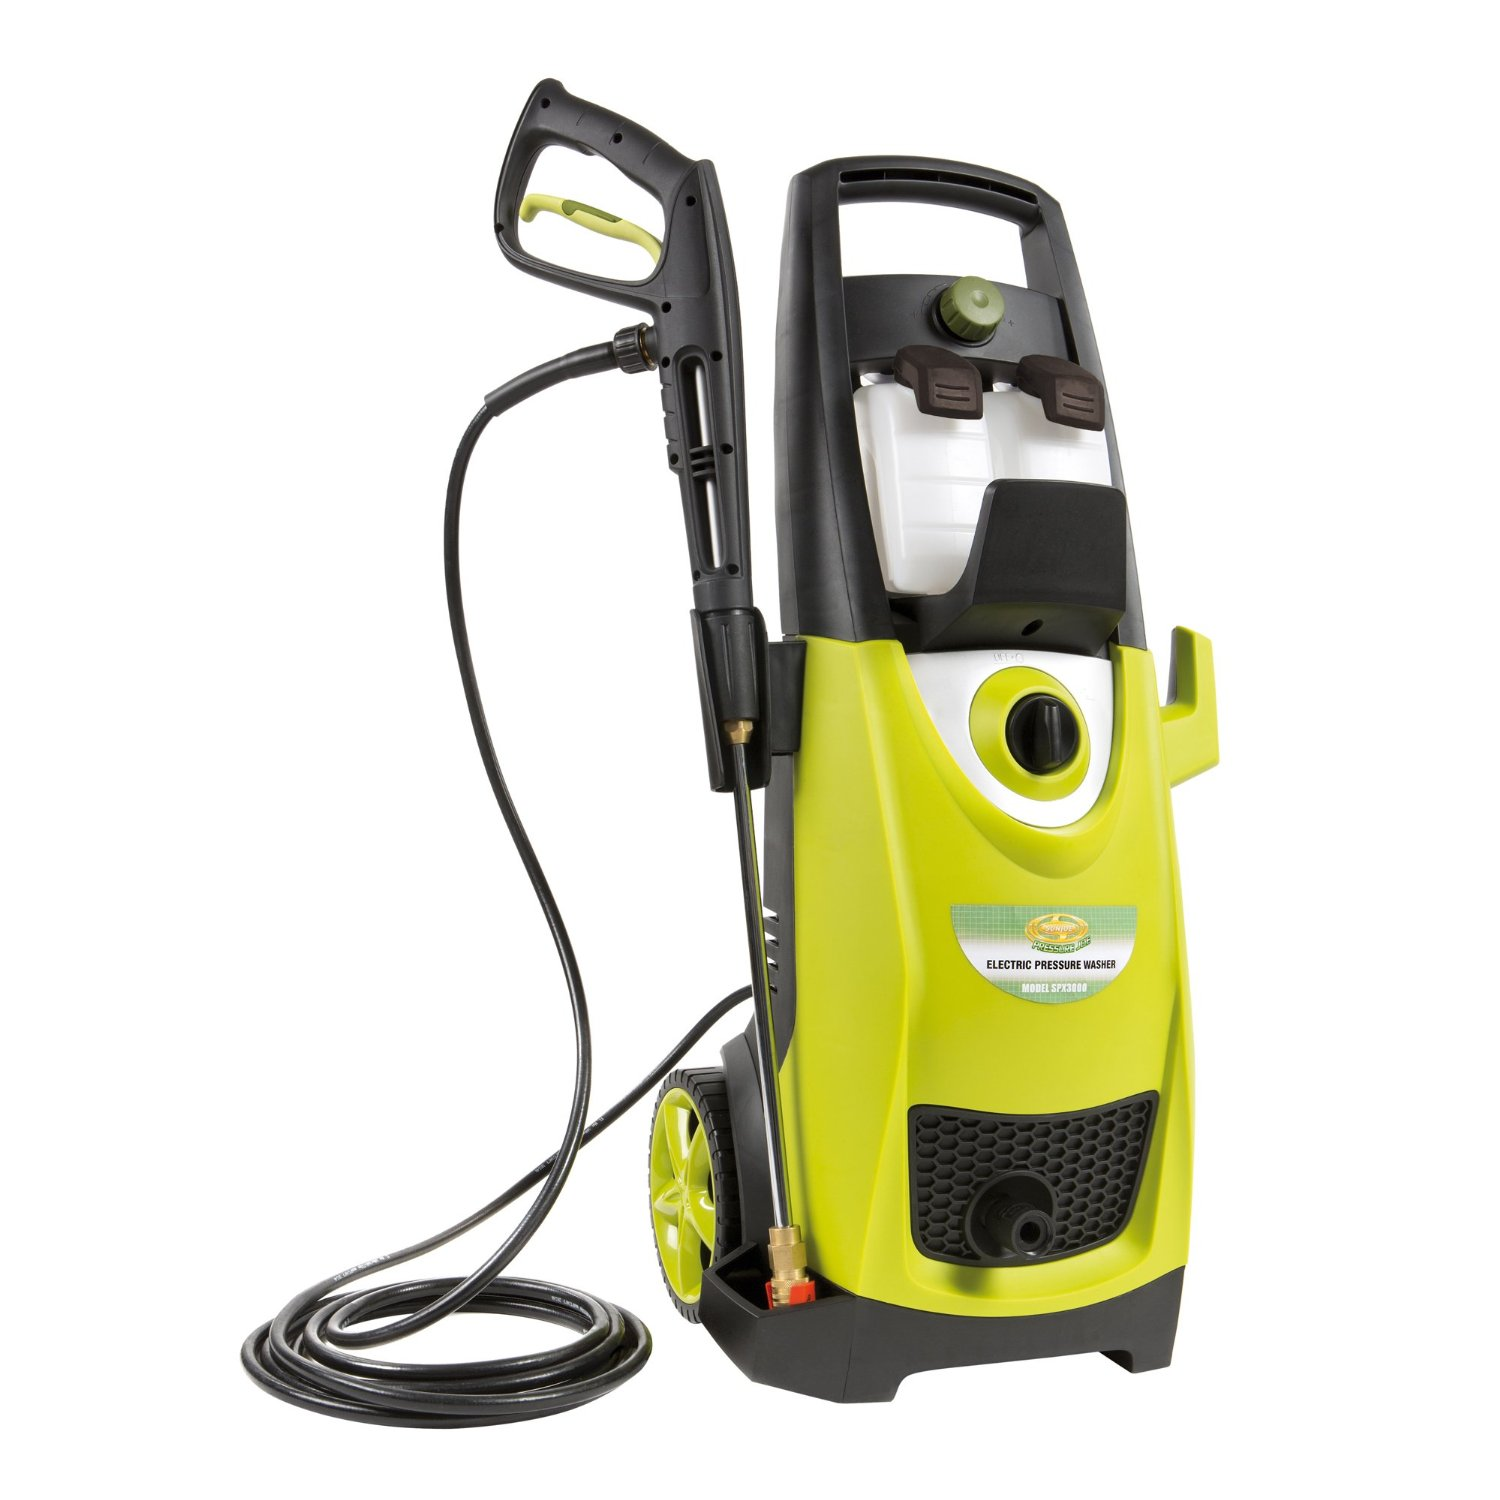 pressure washer rental from home depot with Best Pressure Washer For Home Use on Watch also 205494039 further 203418536 besides Pressure Washers besides 206452326.